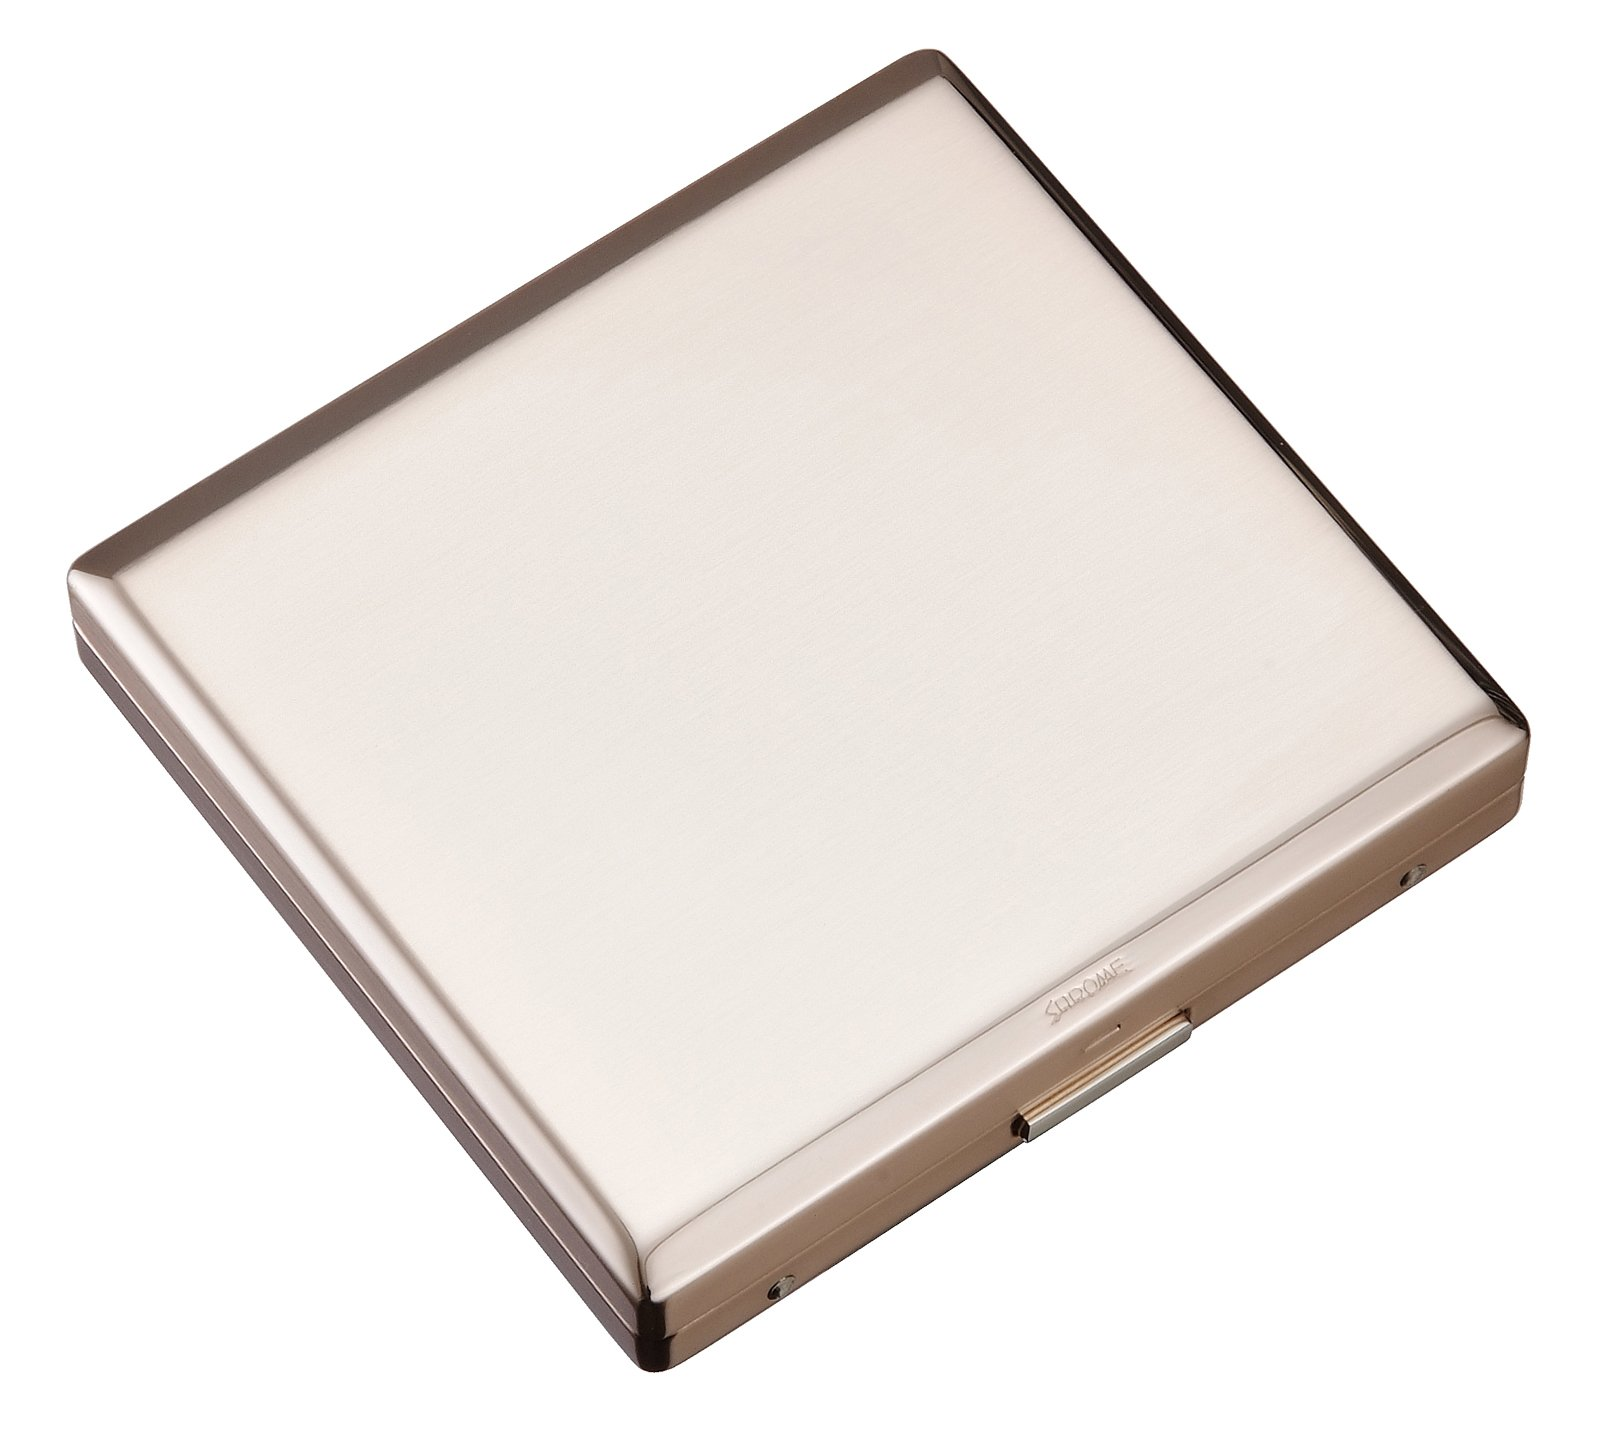 Sarome metal cigarette case EXCC3-03 KS20 / ROSE GOLD SATIN by Sarome (Image #1)